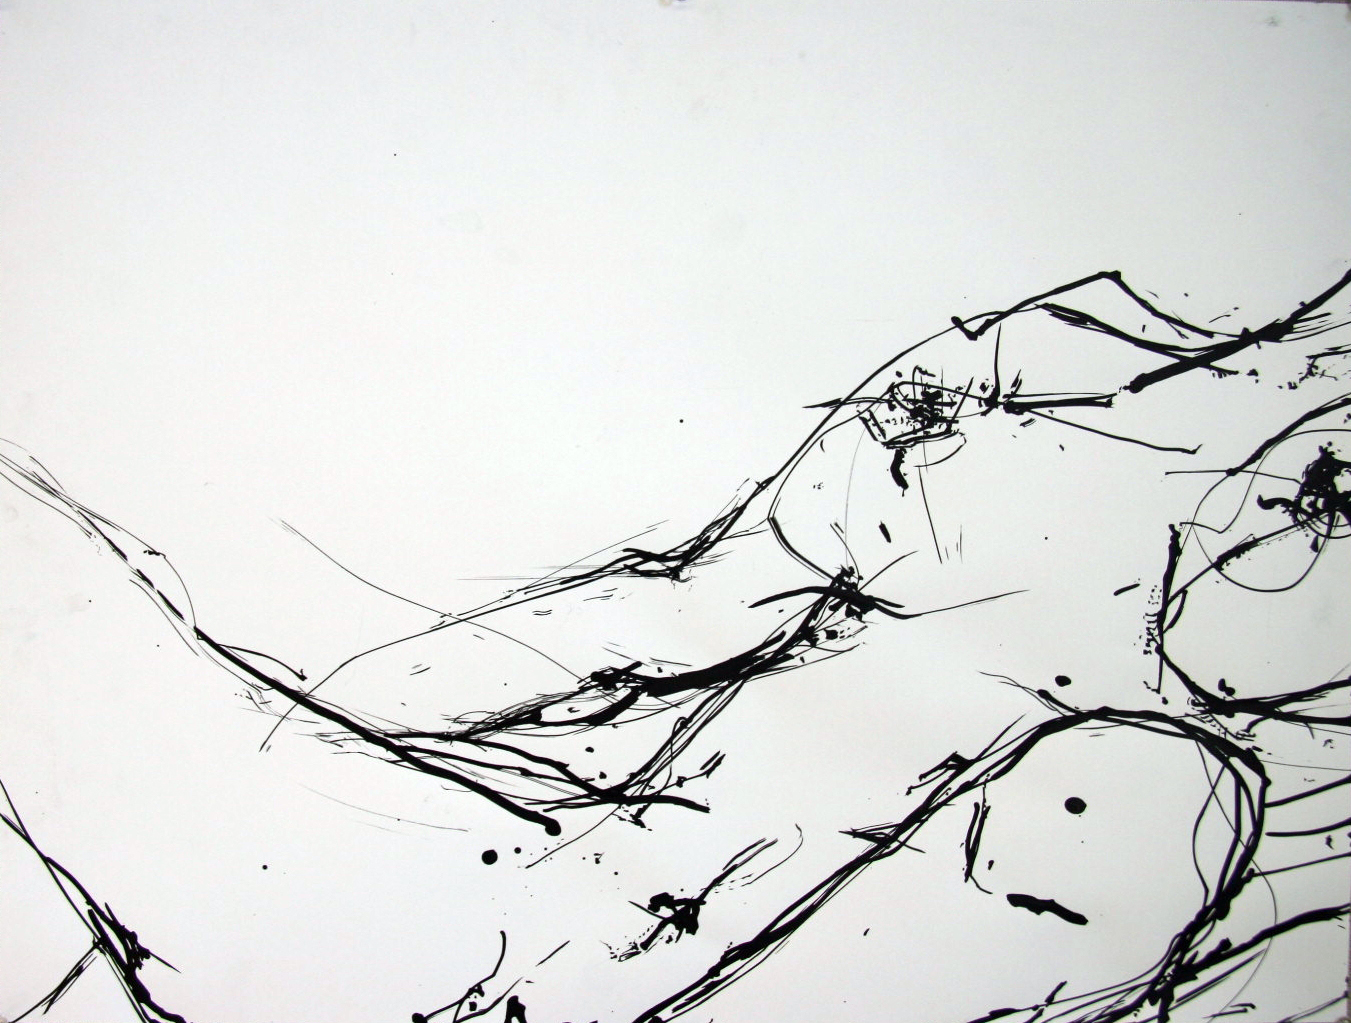 String and Ink 24 x 18inch  For Sale - $ 30  2012